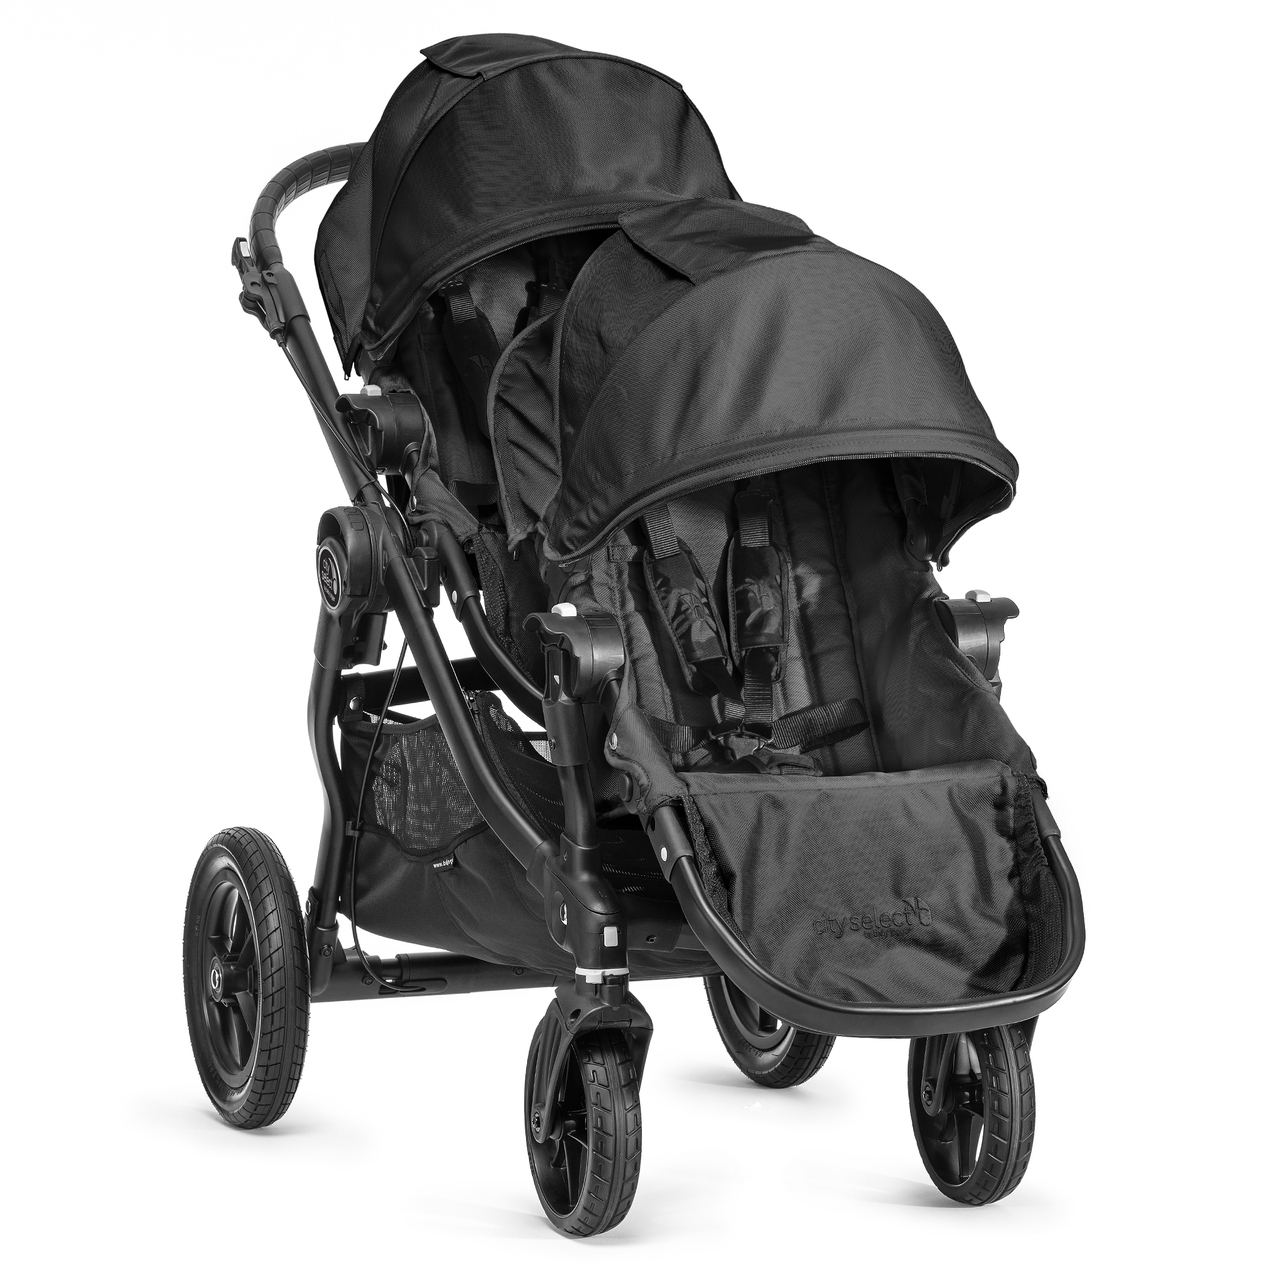 I got the City Select Baby Jogger double stroller second hand and I absolutely love it!